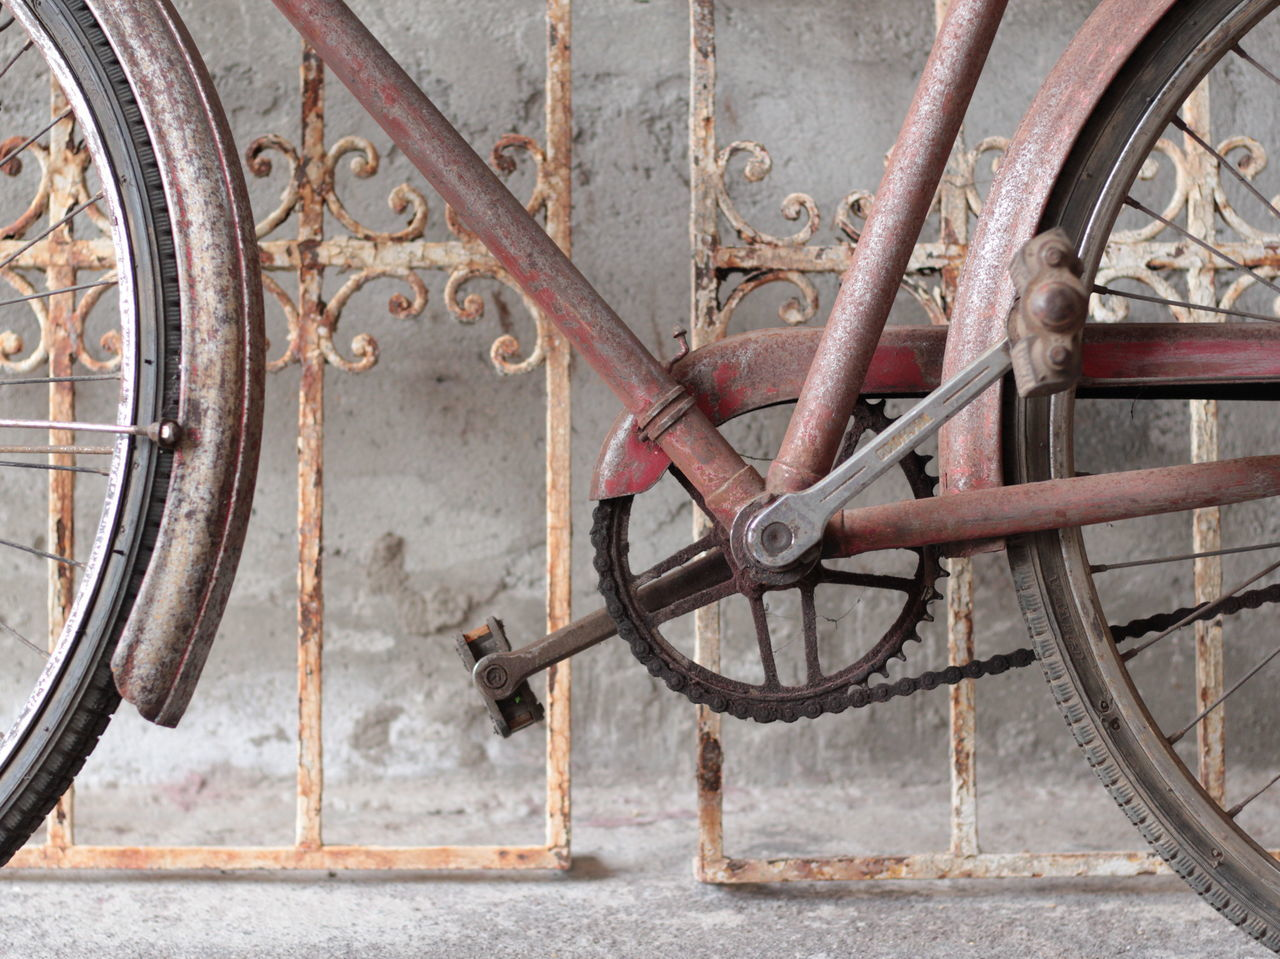 Bicycle Bicycleframes Bicycles Close-up Metal Mode Of Transport Old Old-fashioned Rusty Stationary Tire Transportation Vintage Wheel EyeEmNewHere EyeEmNewHere